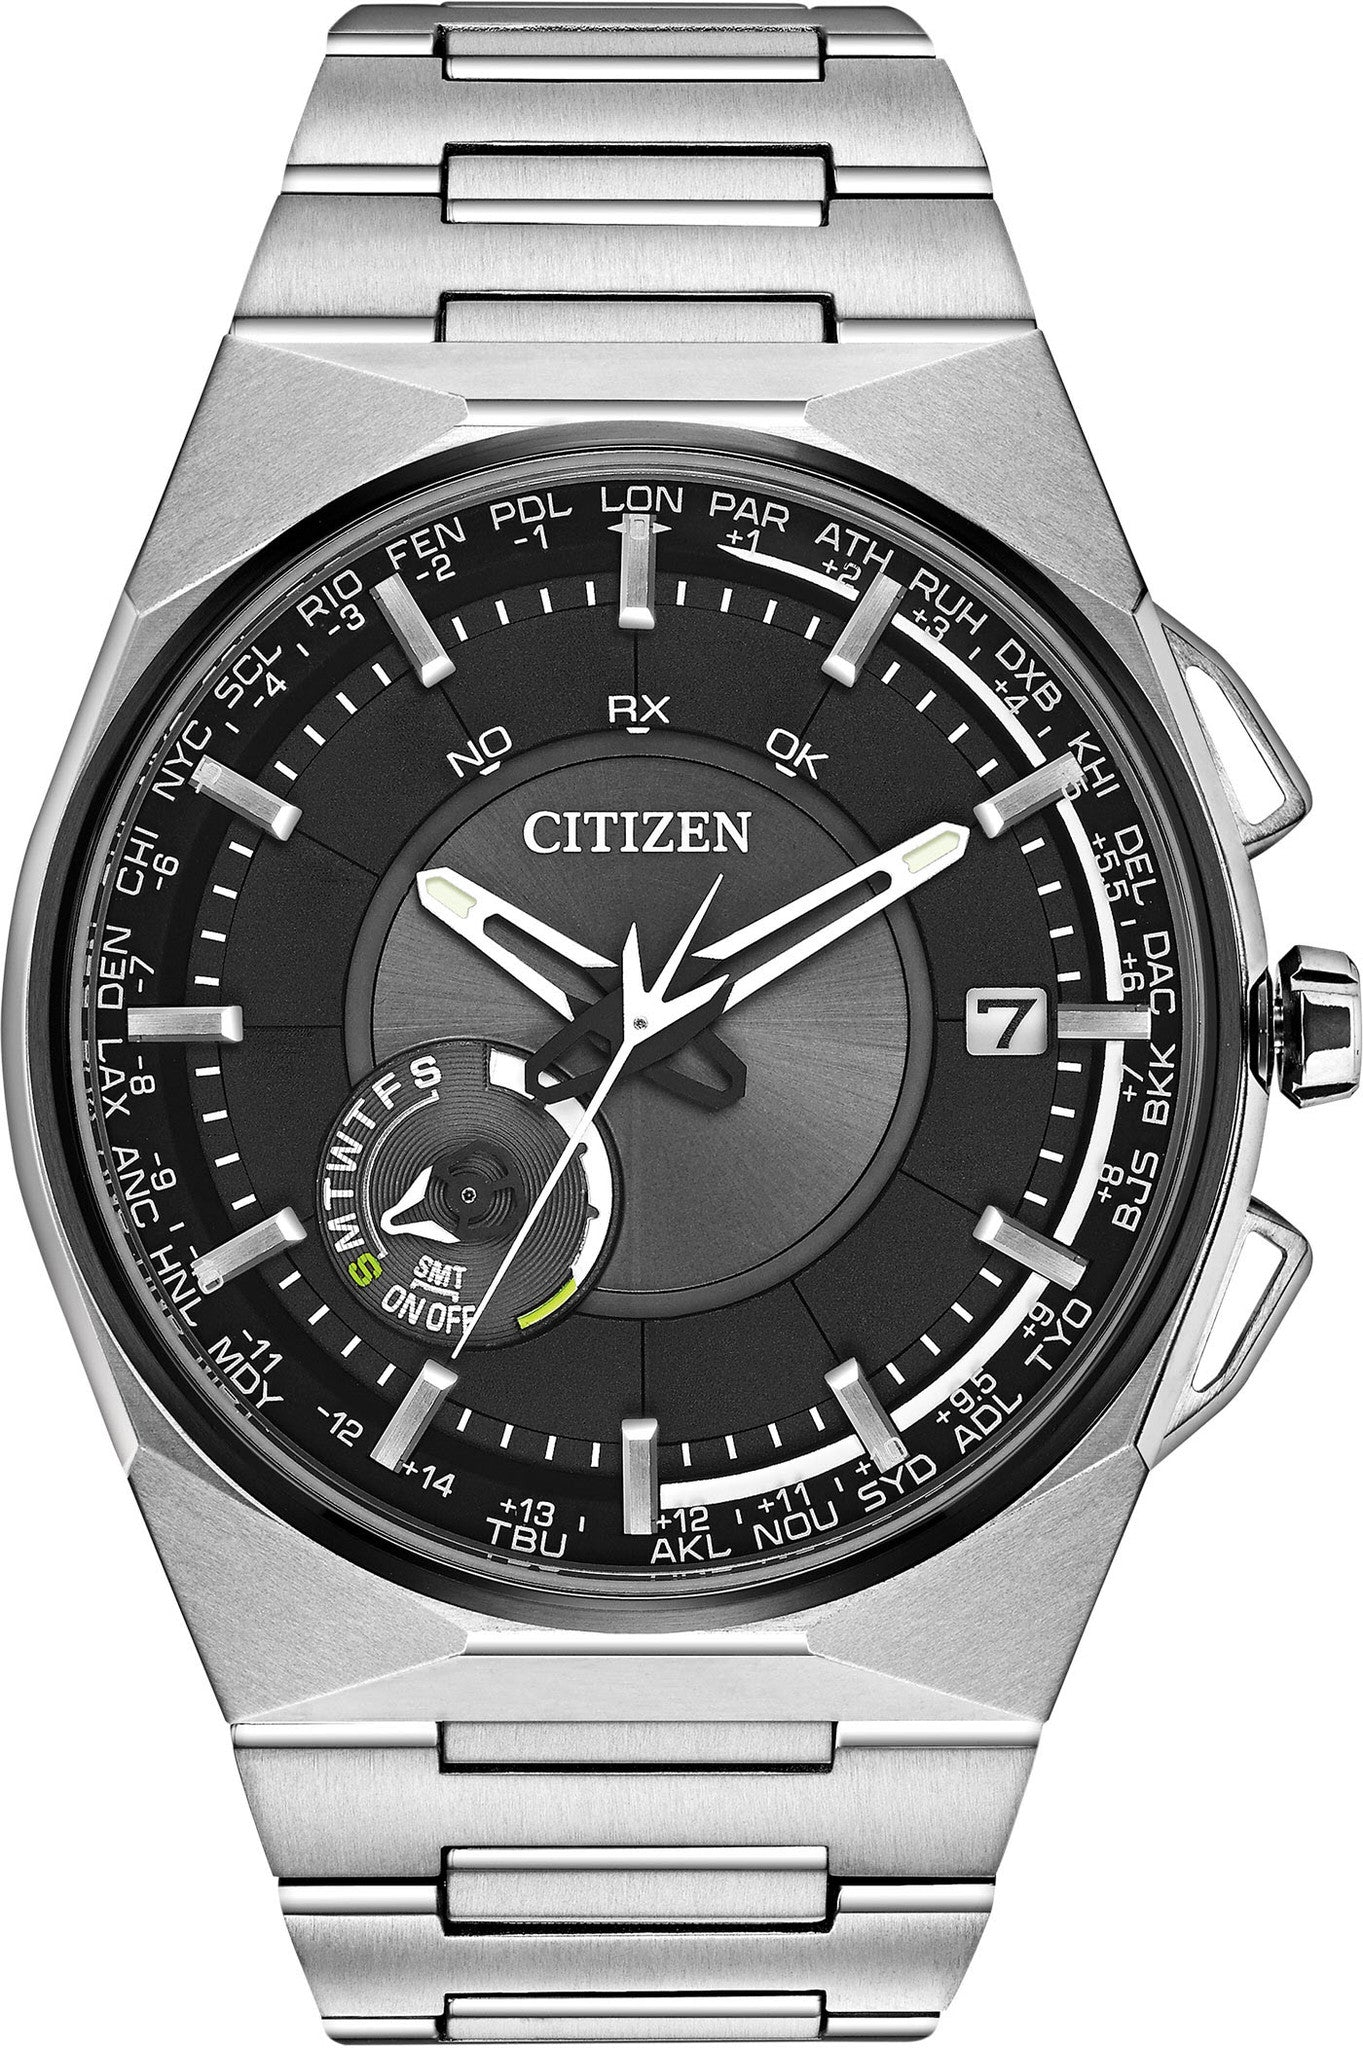 Citizen Watch Eco Drive Satellite Wave F100